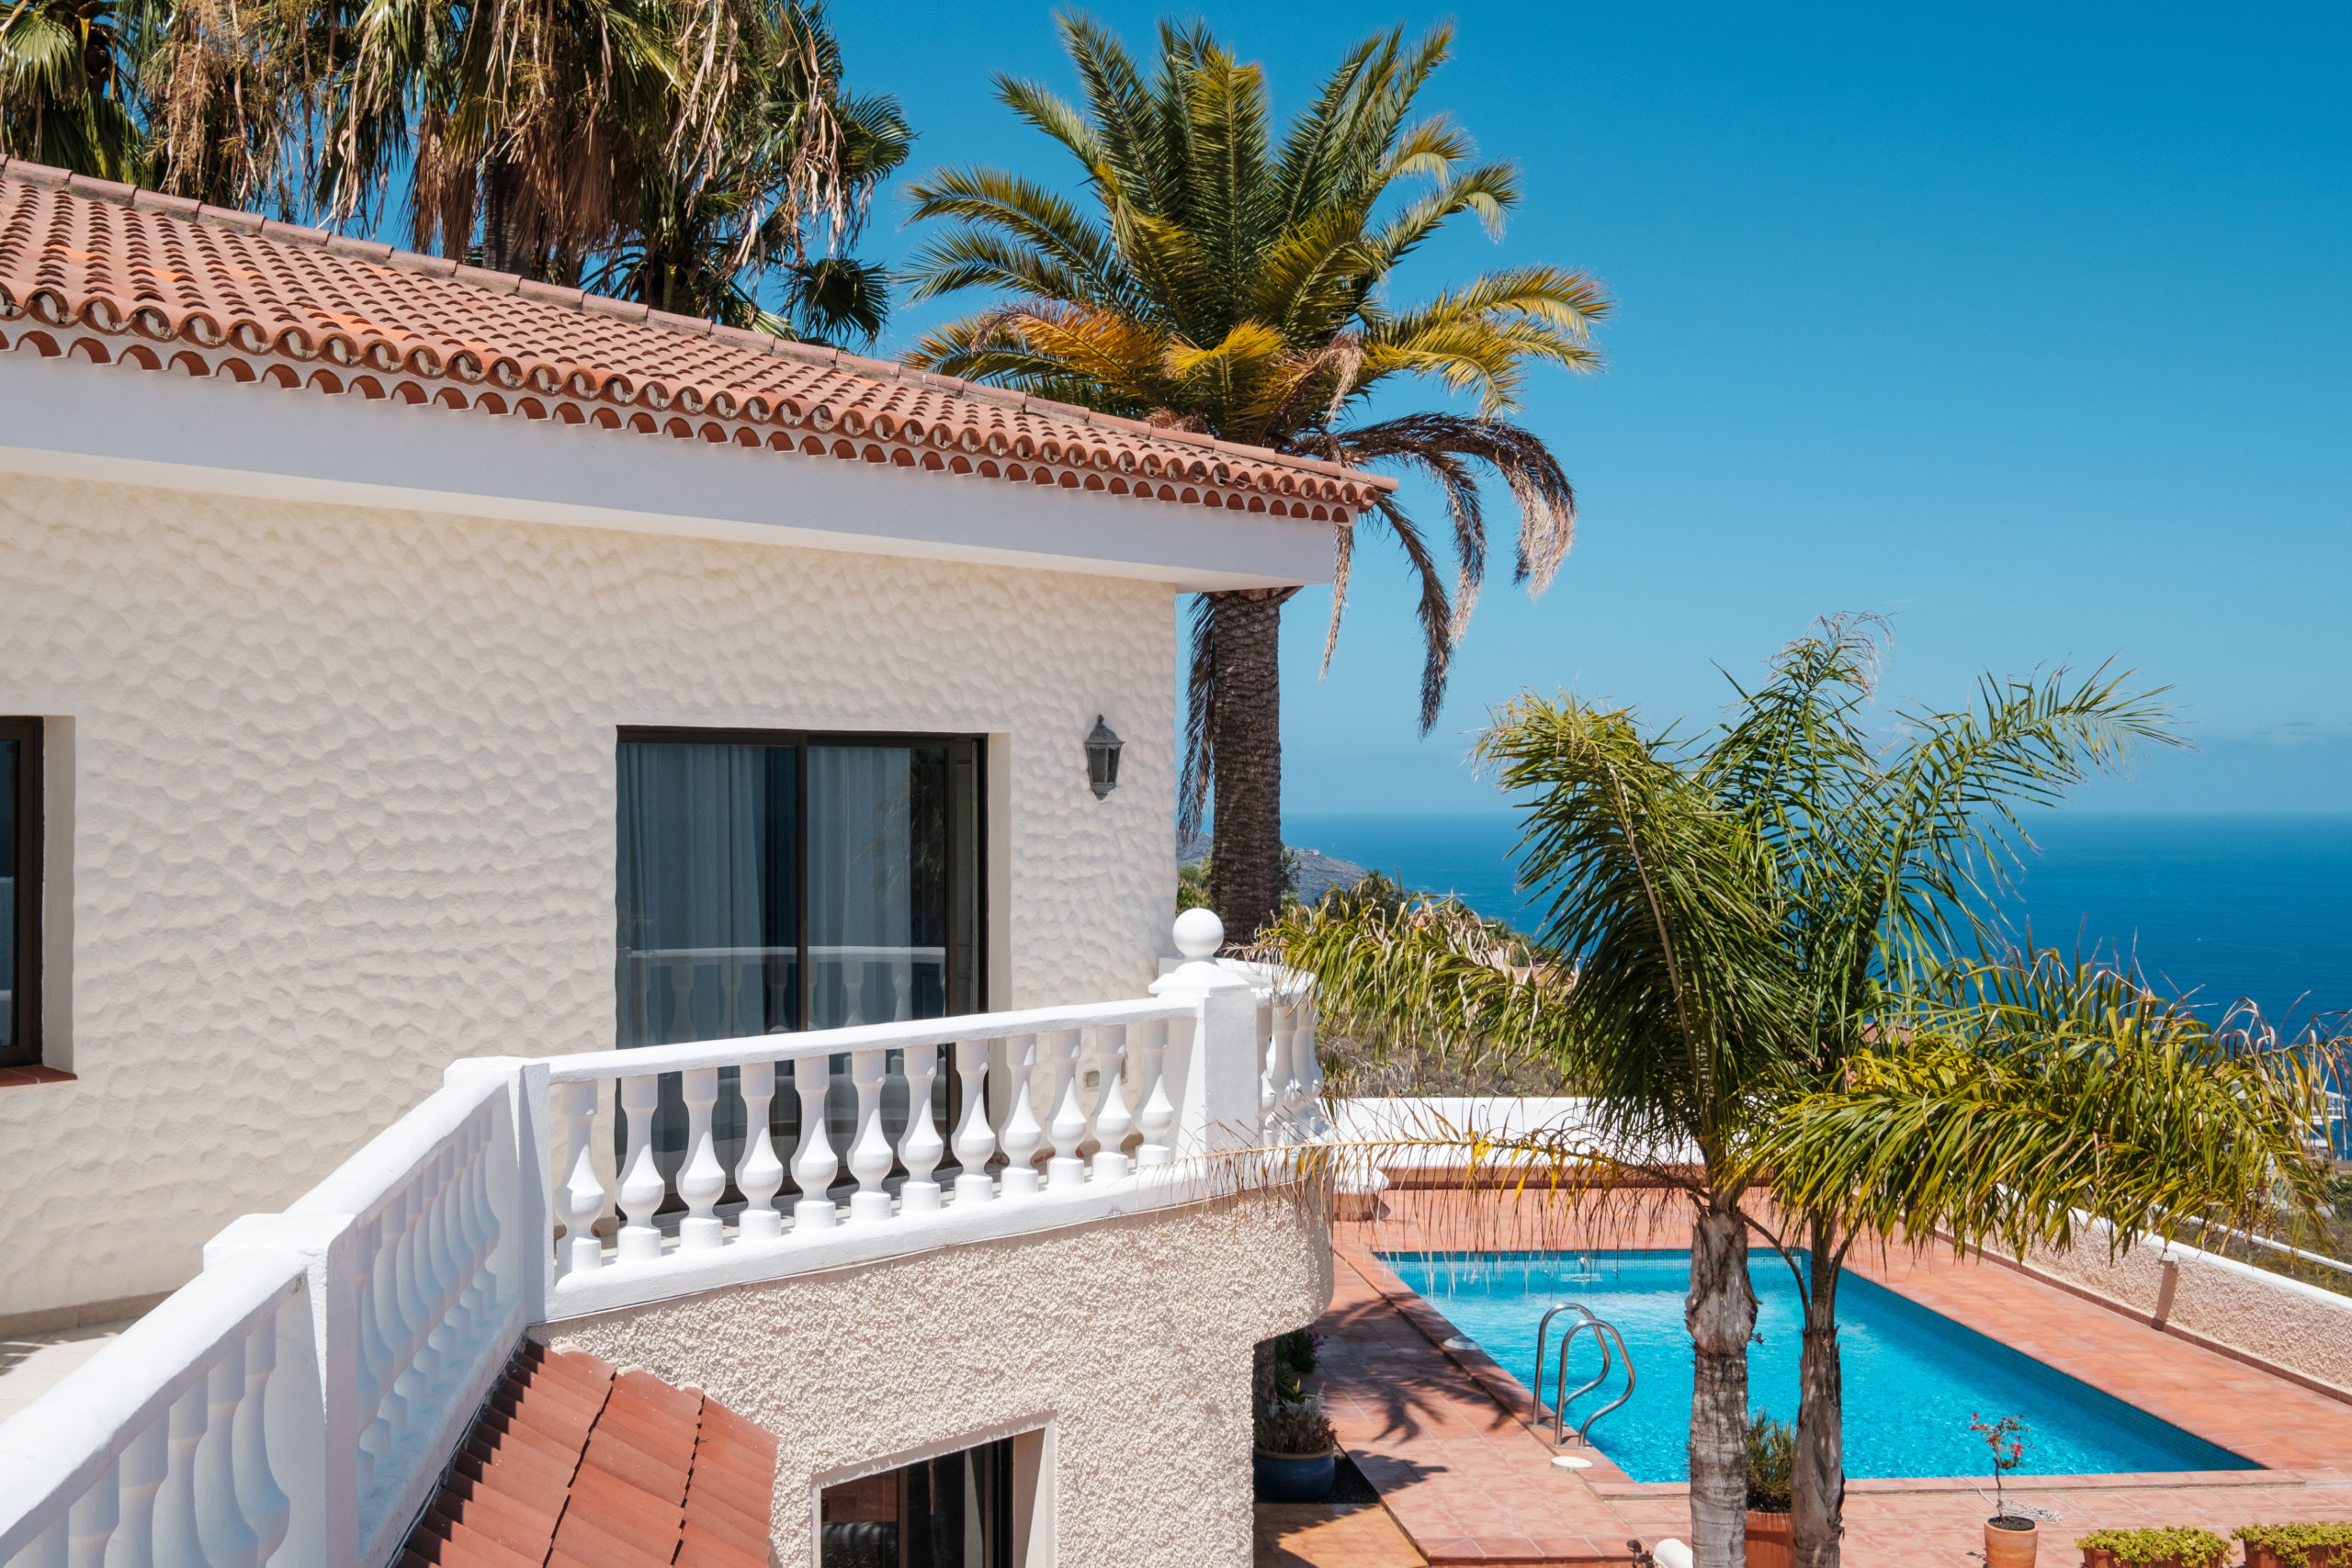 house with swimming pool, palm trees and ocean sea view